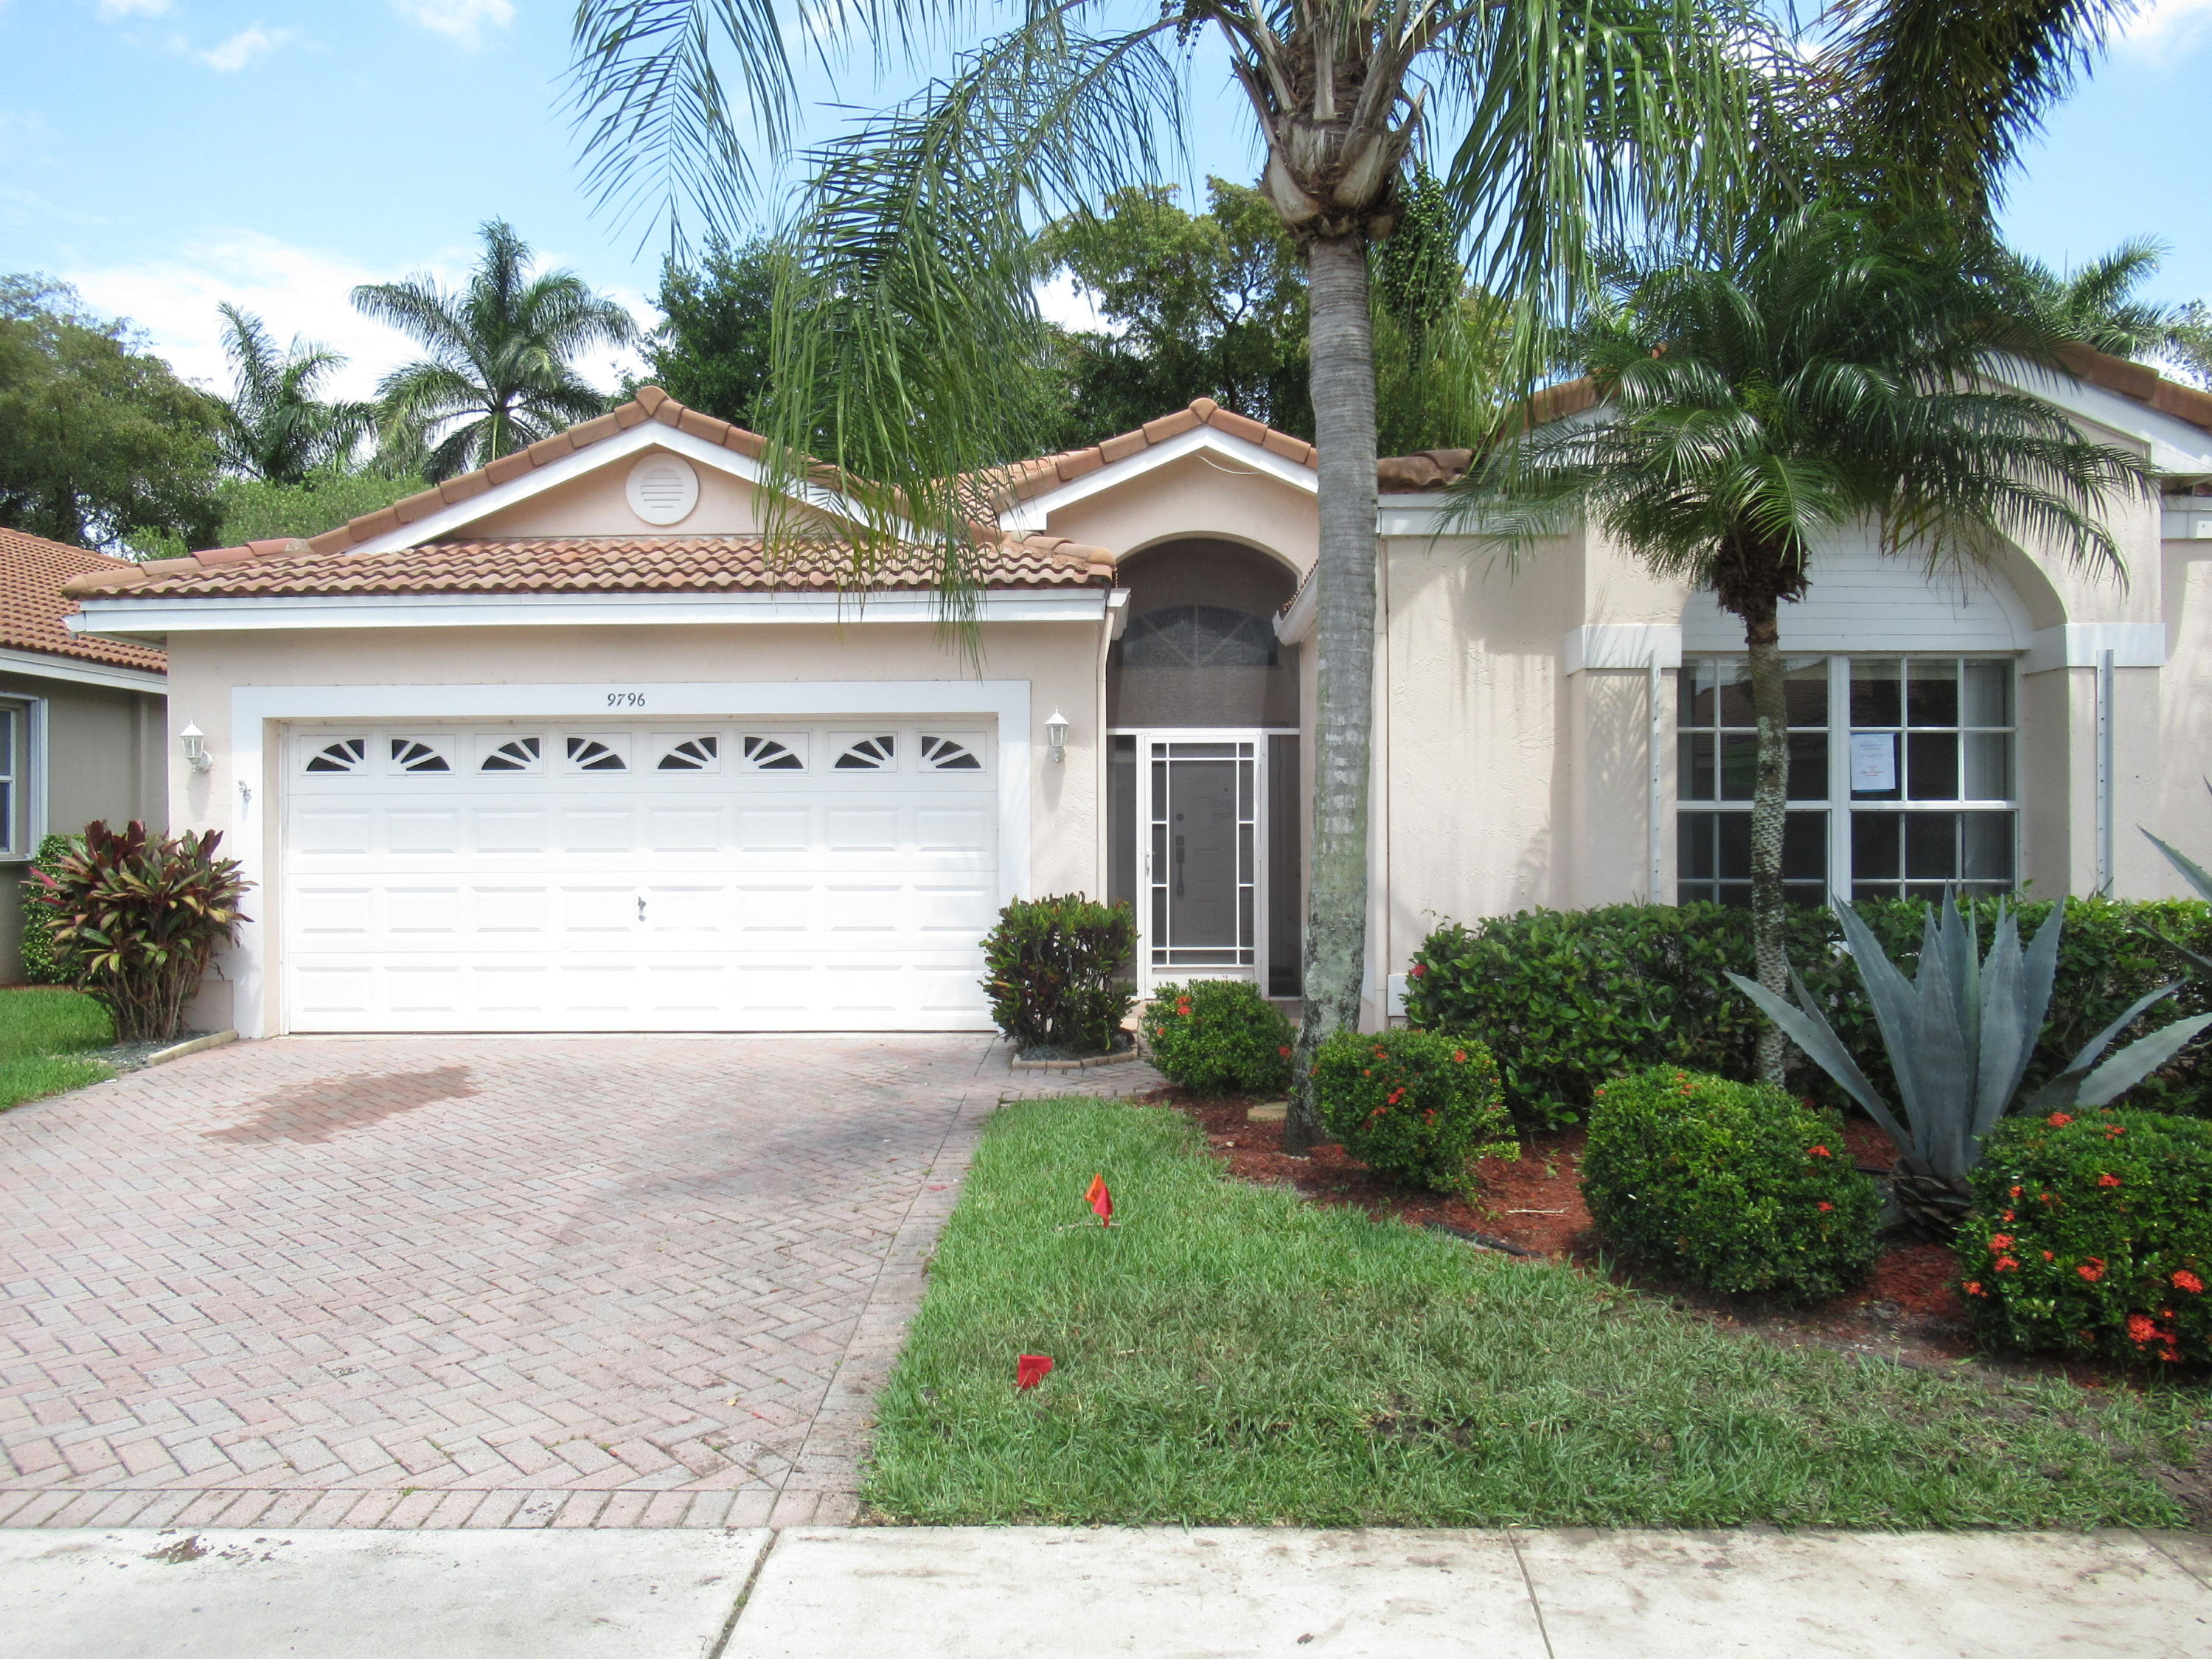 9796 Lemonwood Drive  Boynton Beach, FL 33437